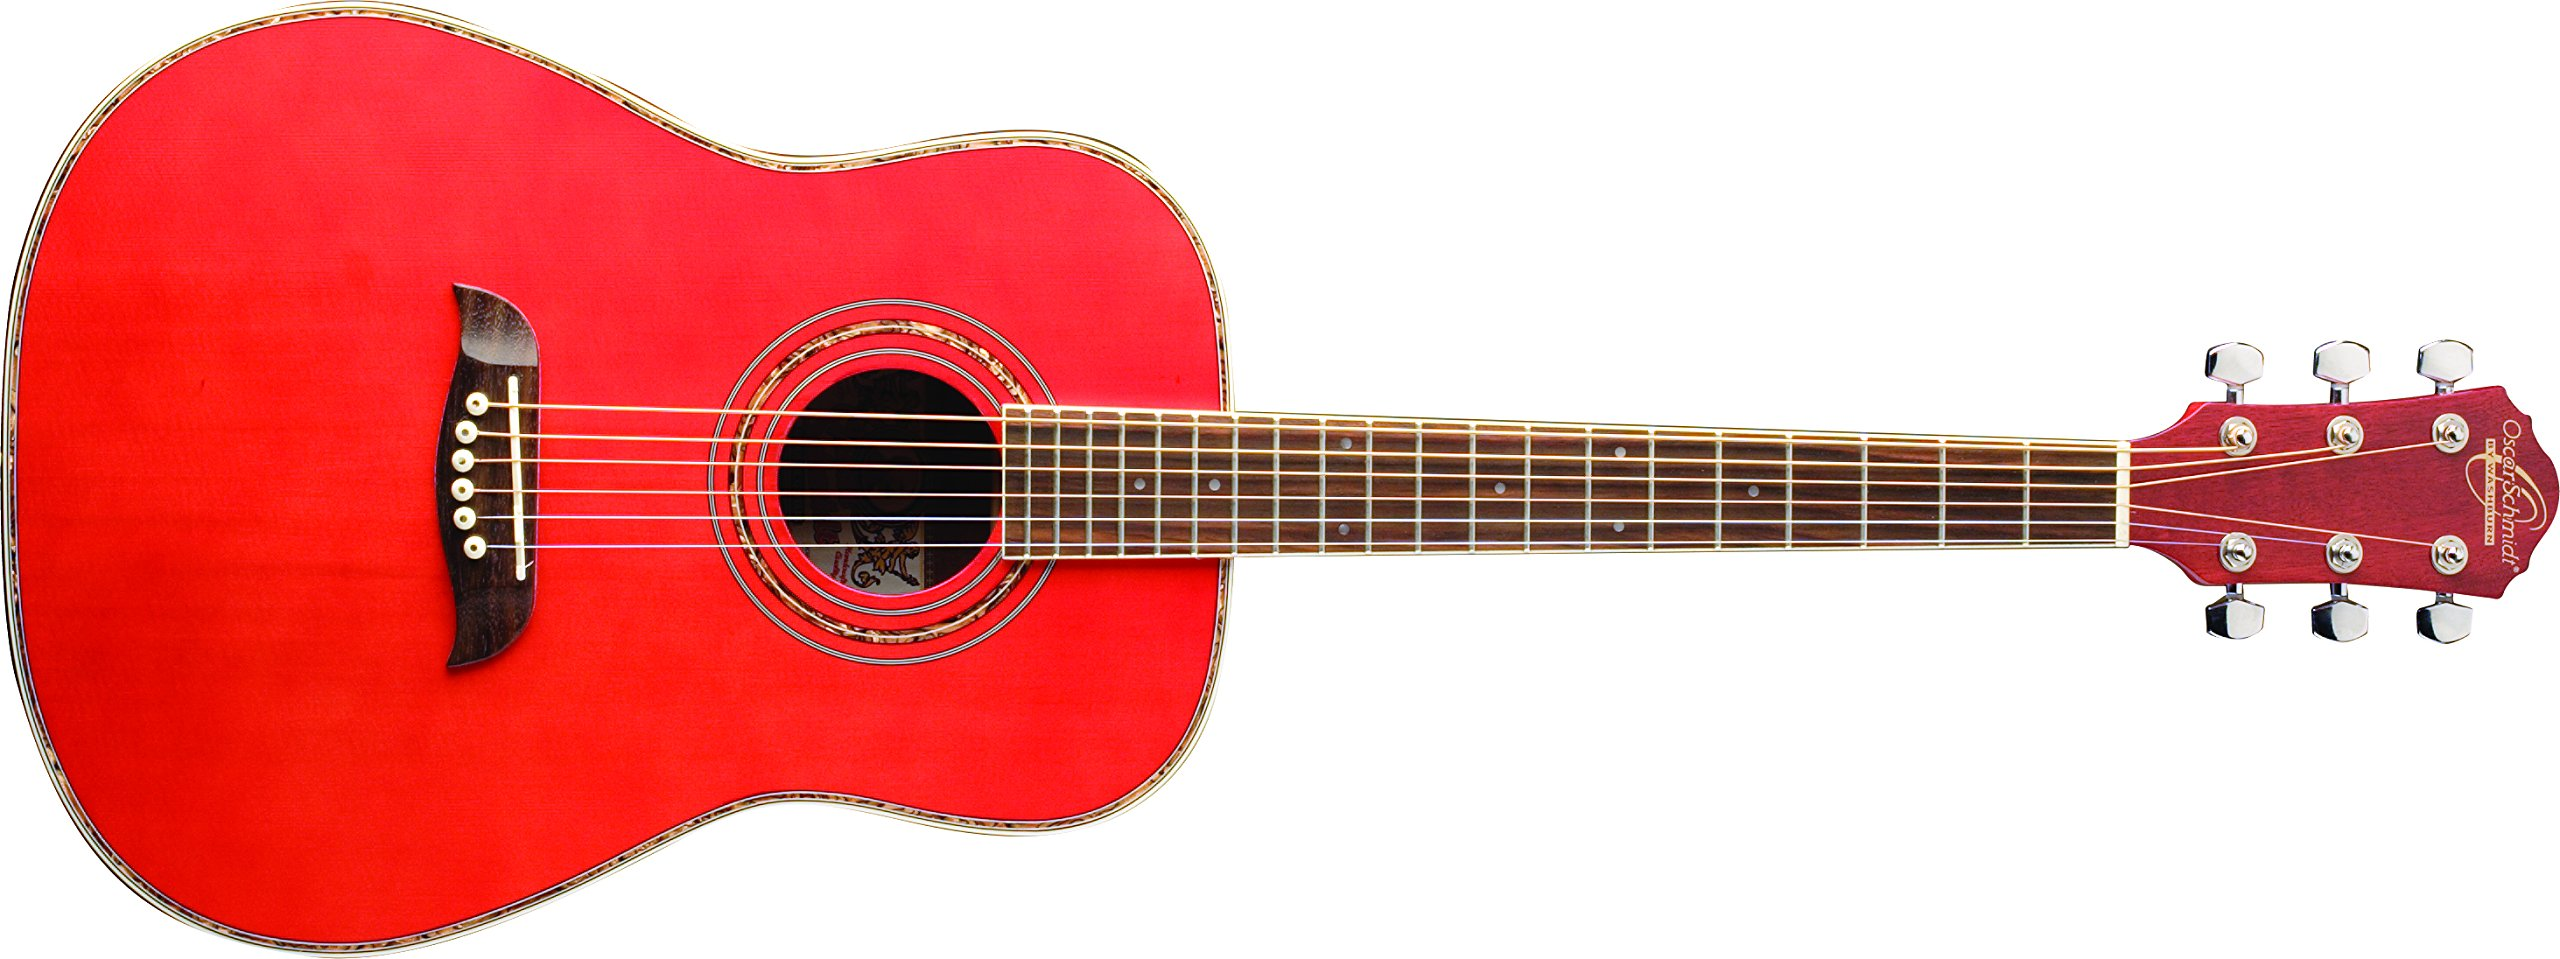 Oscar Schmidt OG1TR-A-U 3/4 Size Acoustic Guitar (High Gloss Red)